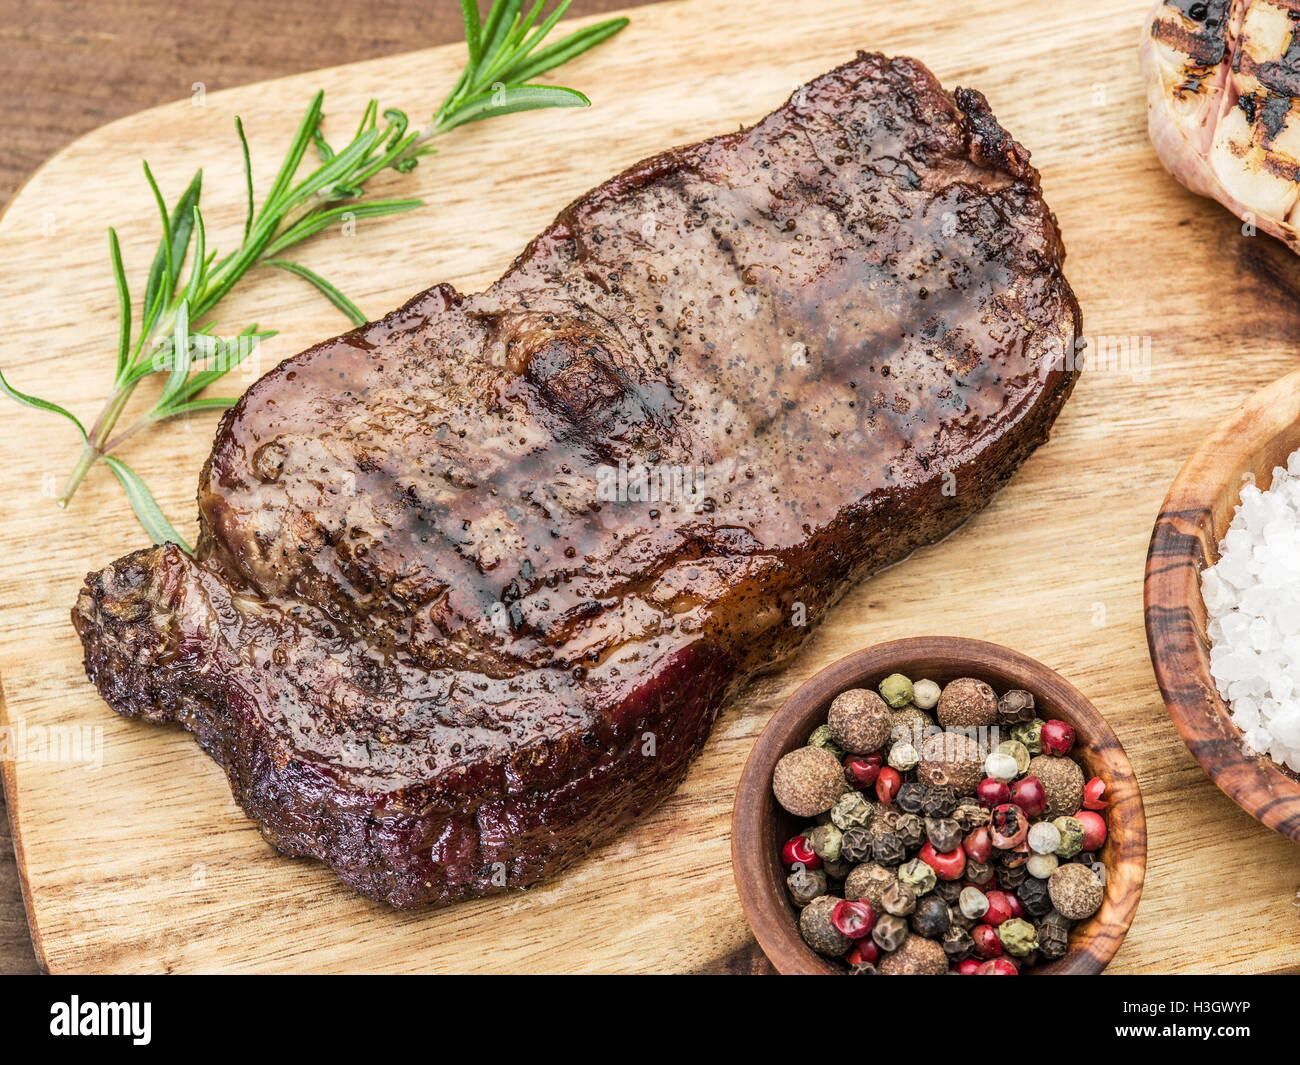 Steak Ribeye with spices on the wooden tray. - Stock Image